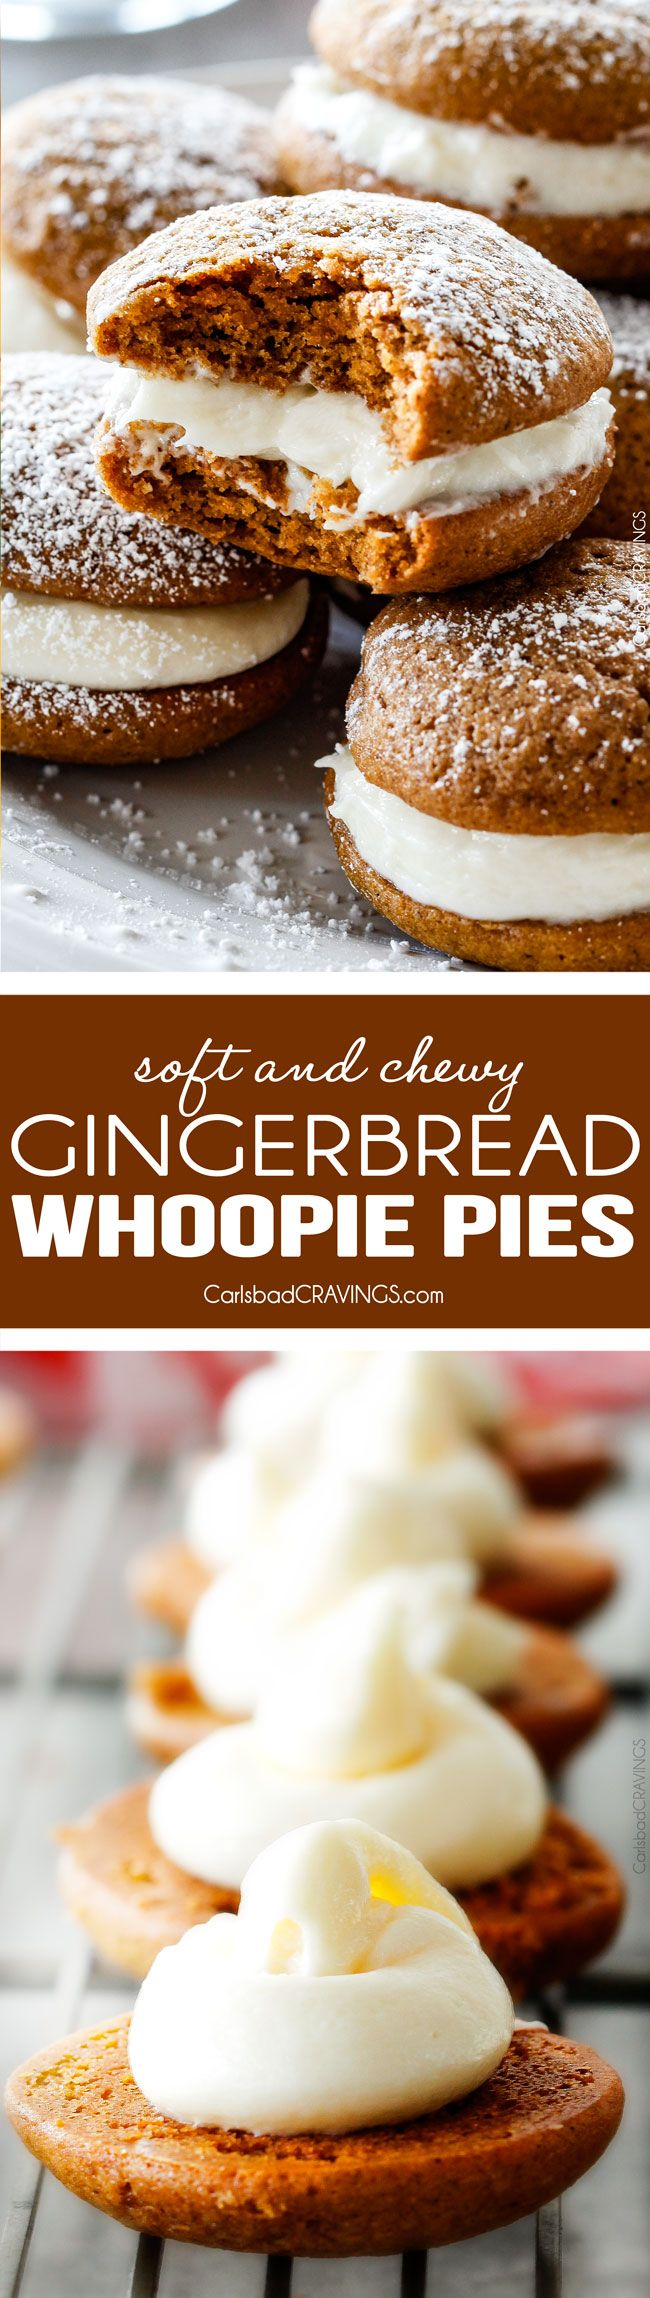 Gingerbread Whoopie Pies - everyone always begs me for this recipe! Super soft gingerbread cookies stuffed with luscious cream cheese filling! You won't be able to have just one!